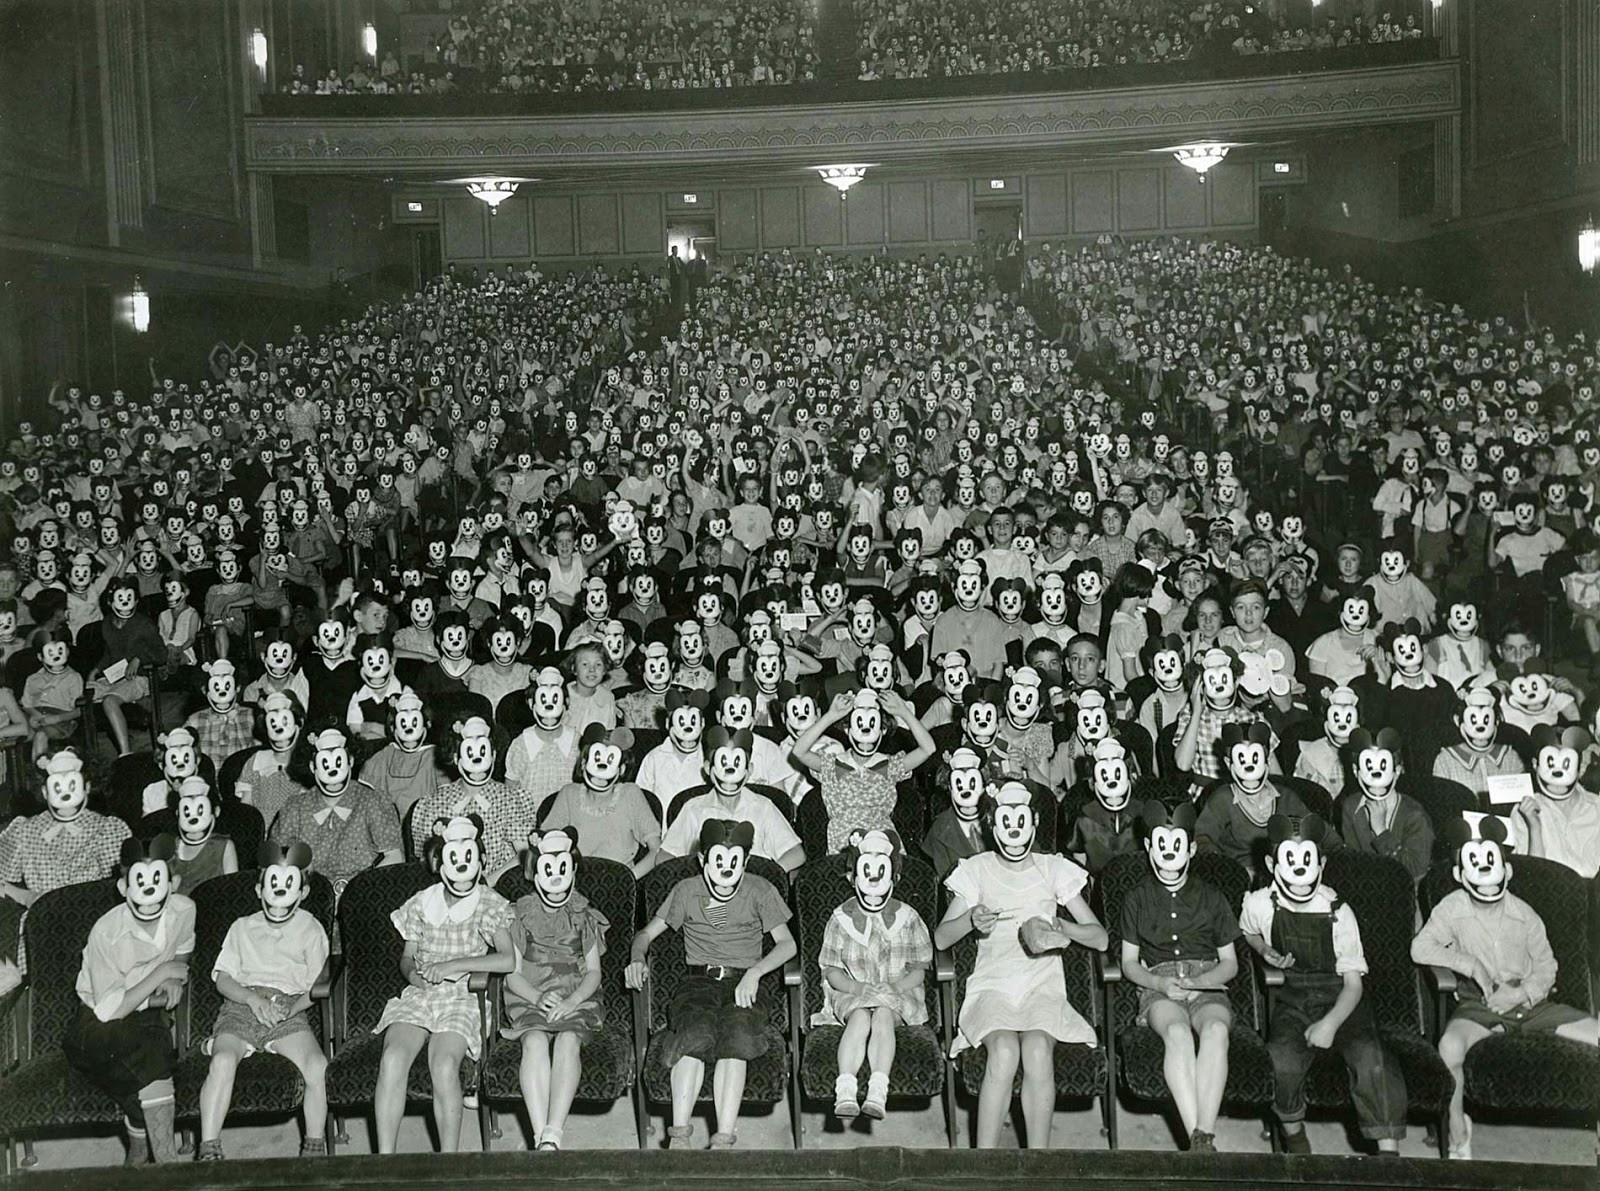 https://forumbilder.com/images/2019/08/24/A-meeting-of-the-Mickey-Mouse-Club-early-1930s.jpg